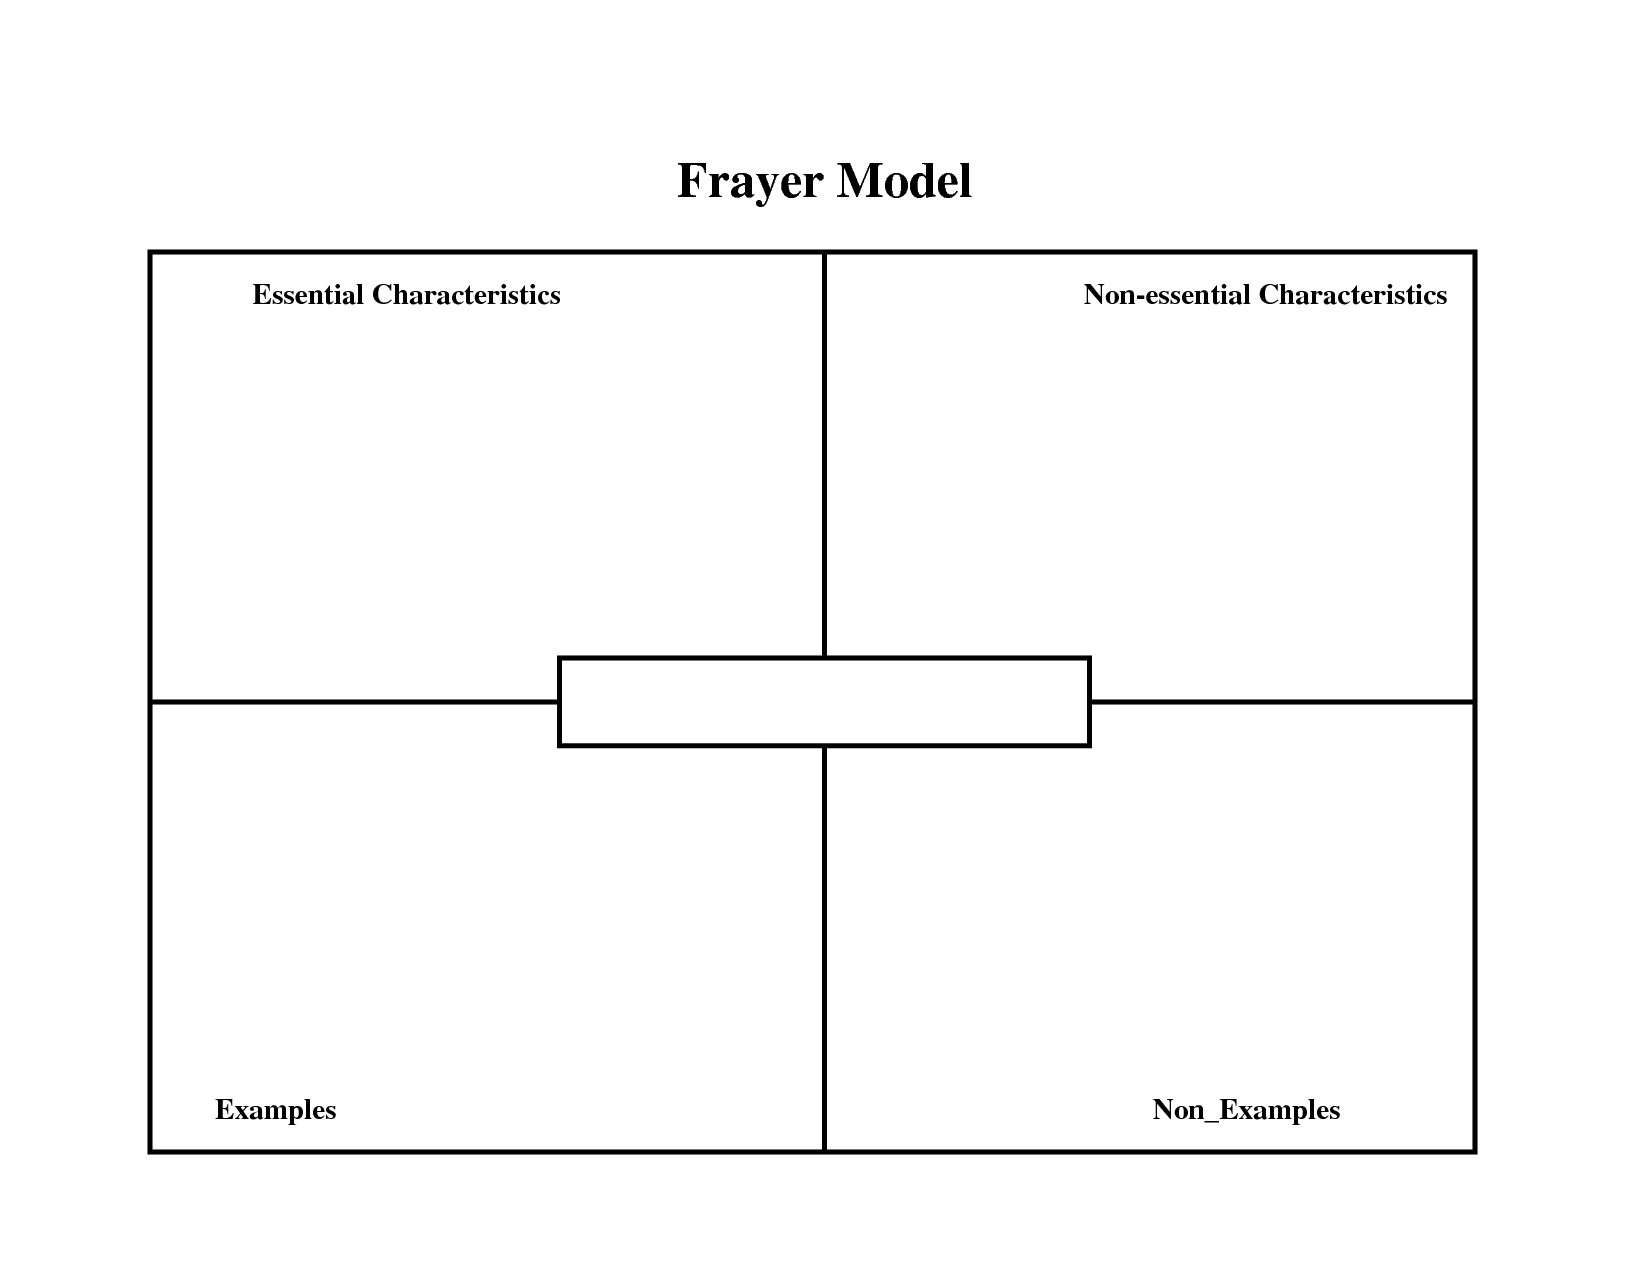 worksheet Frayer Model Worksheet frayer model template school pinterest hcpss org models and template